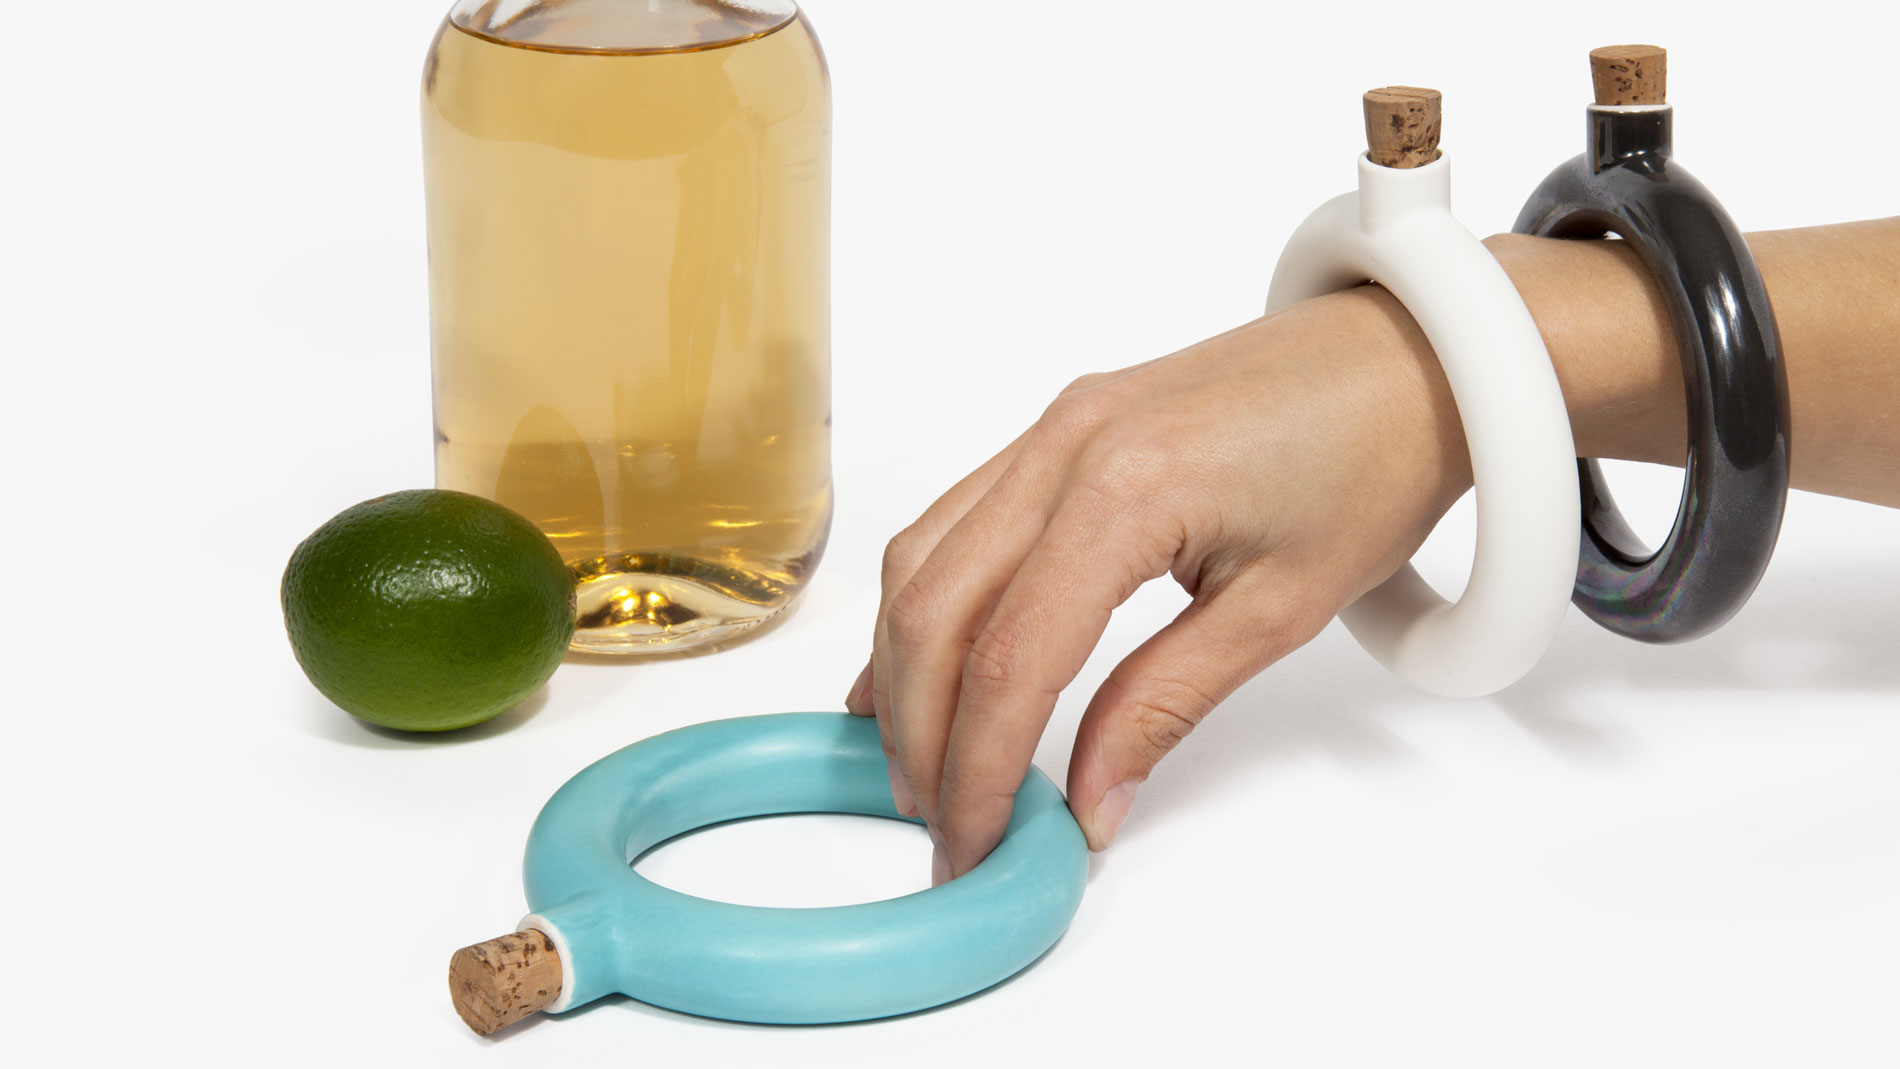 Flask Bracelets and Other Fashionable Places to Store Your Booze